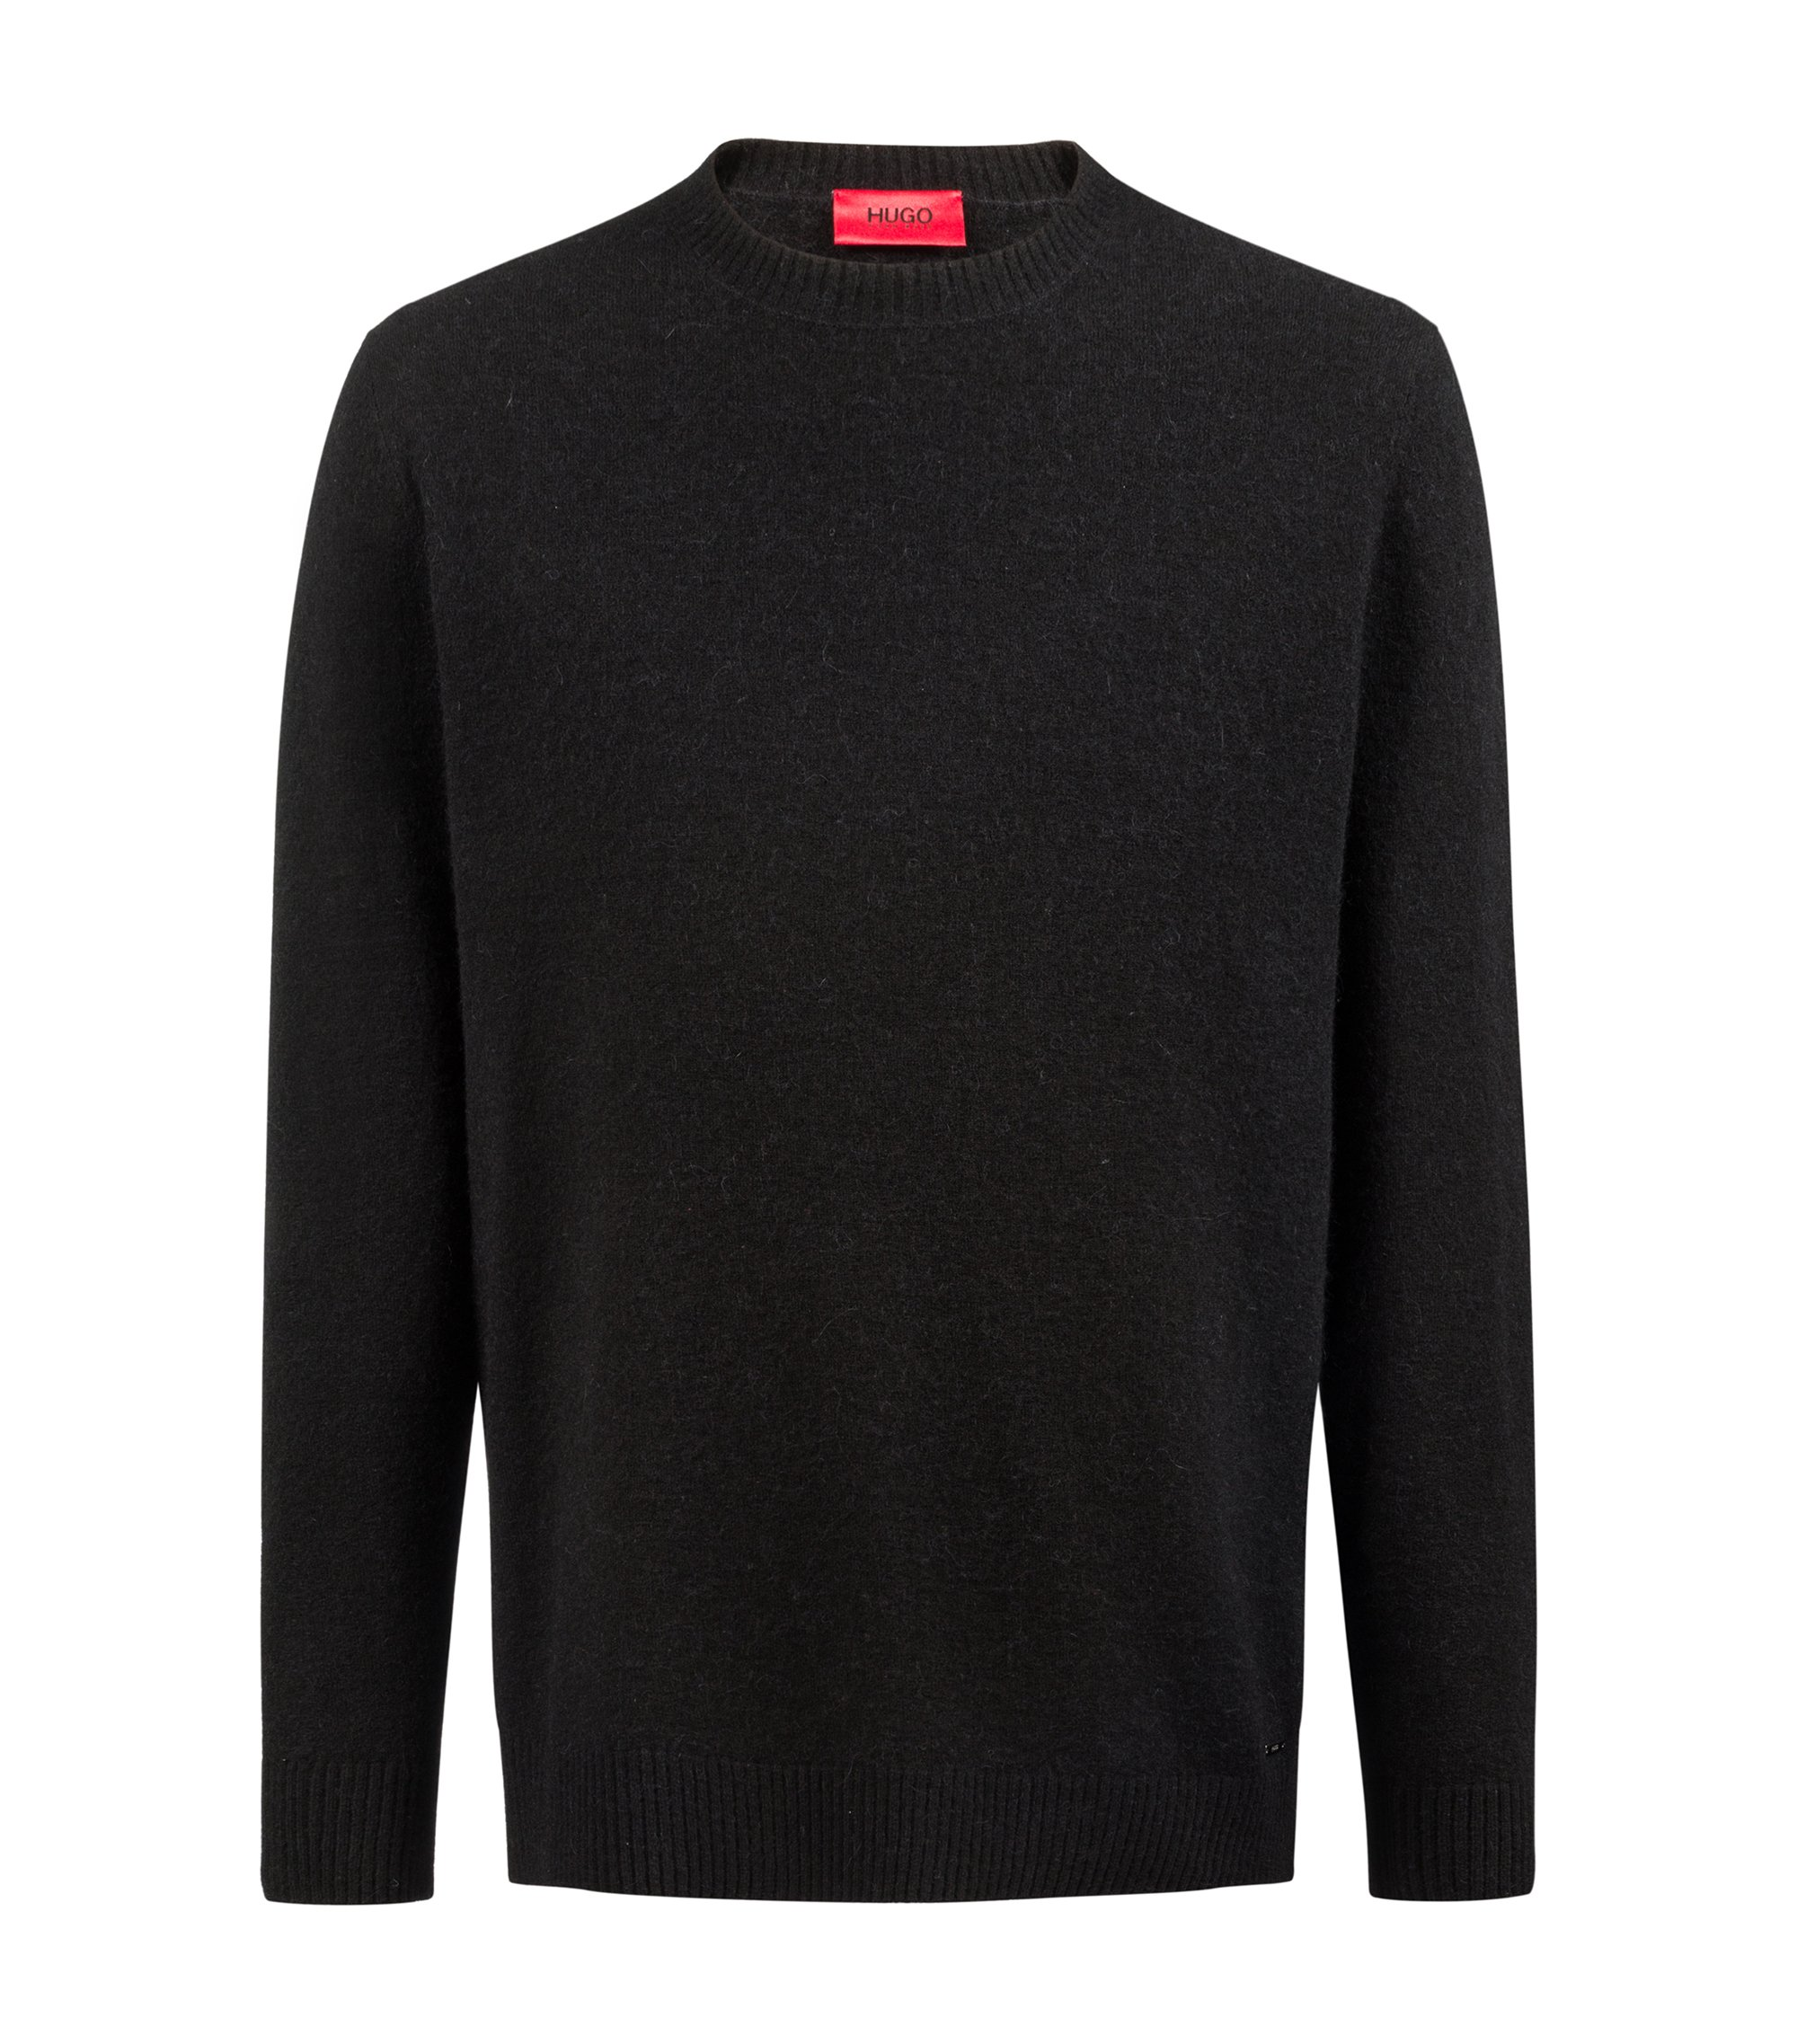 Oversized-fit jersey sweater blended with wool and alpaca, Black